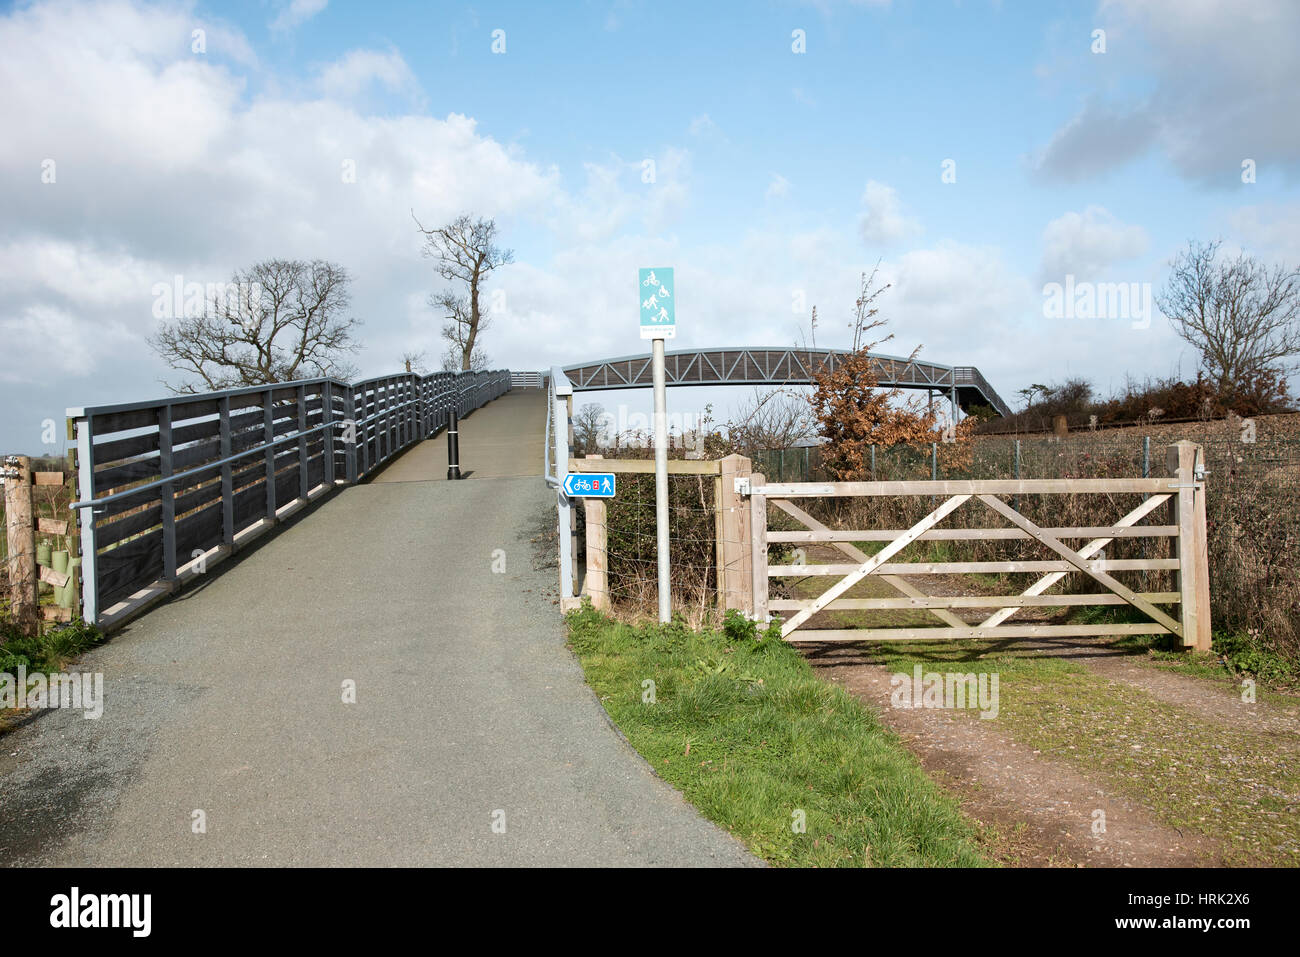 Cycleway and pedestrian footpath across rail lines to the Exe Estuary footpath near Starcross in South Devon England - Stock Image